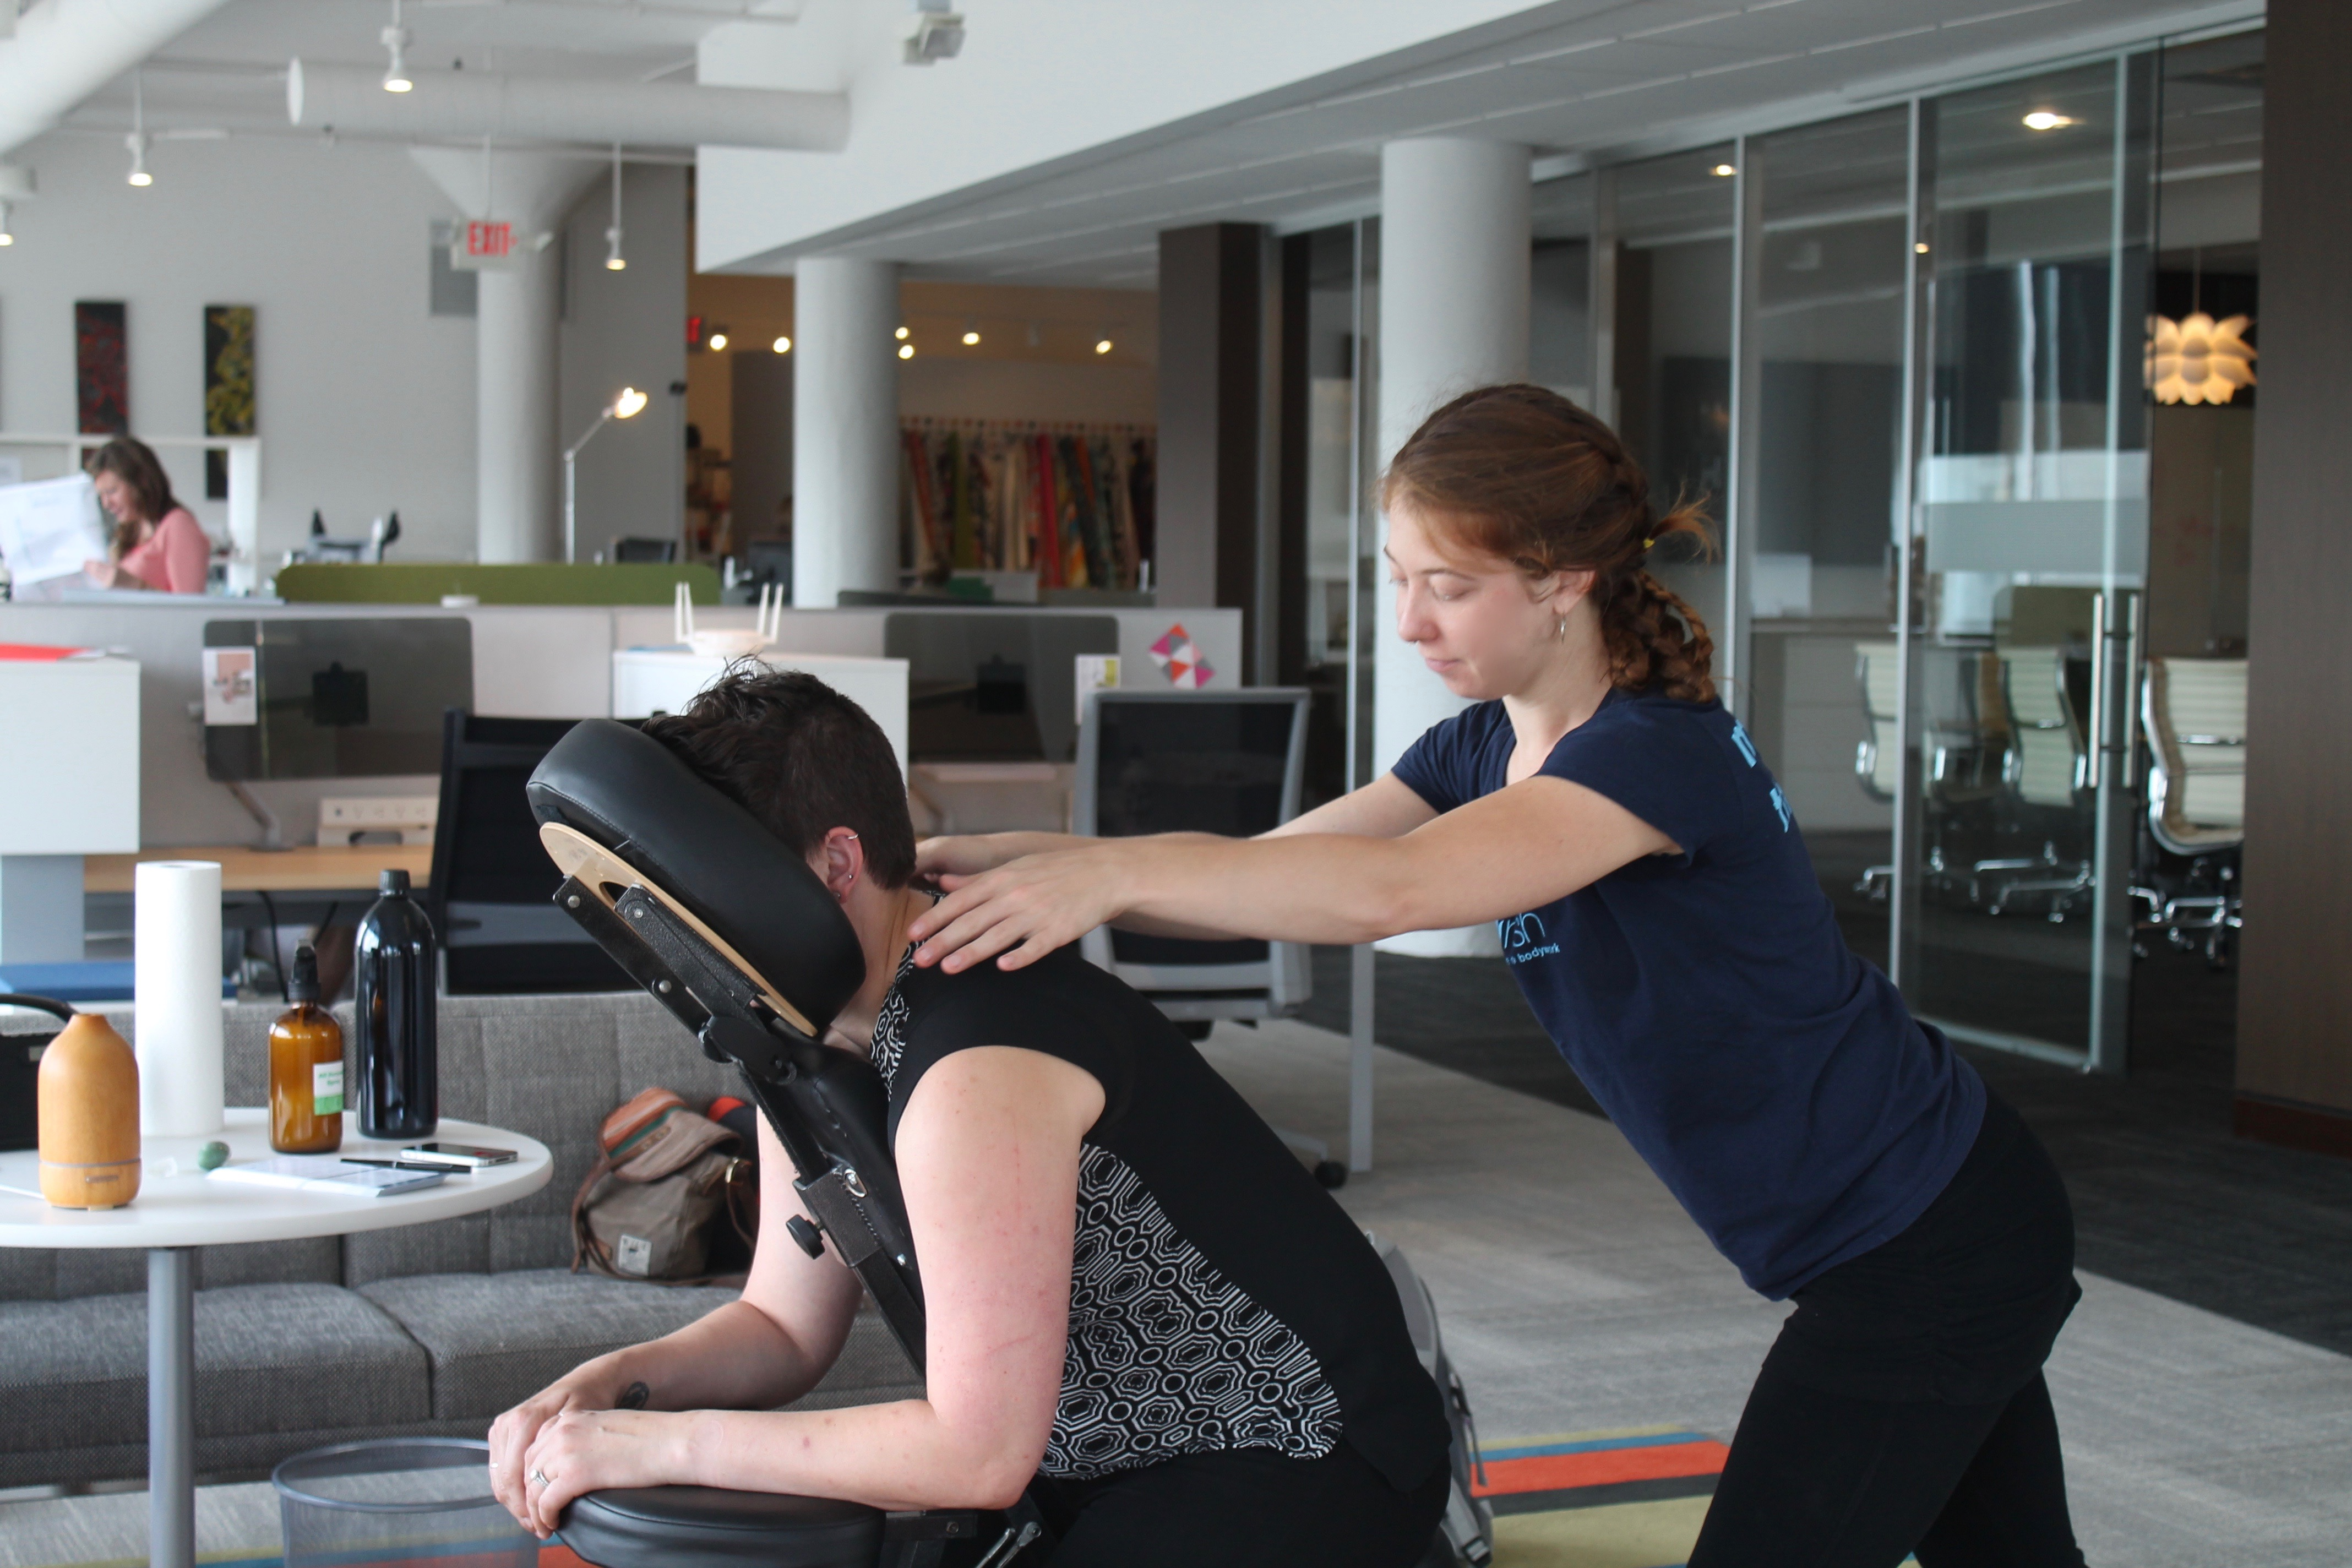 Chair massage therapy - Corporate Chair Massage Events Call Now To Schedule